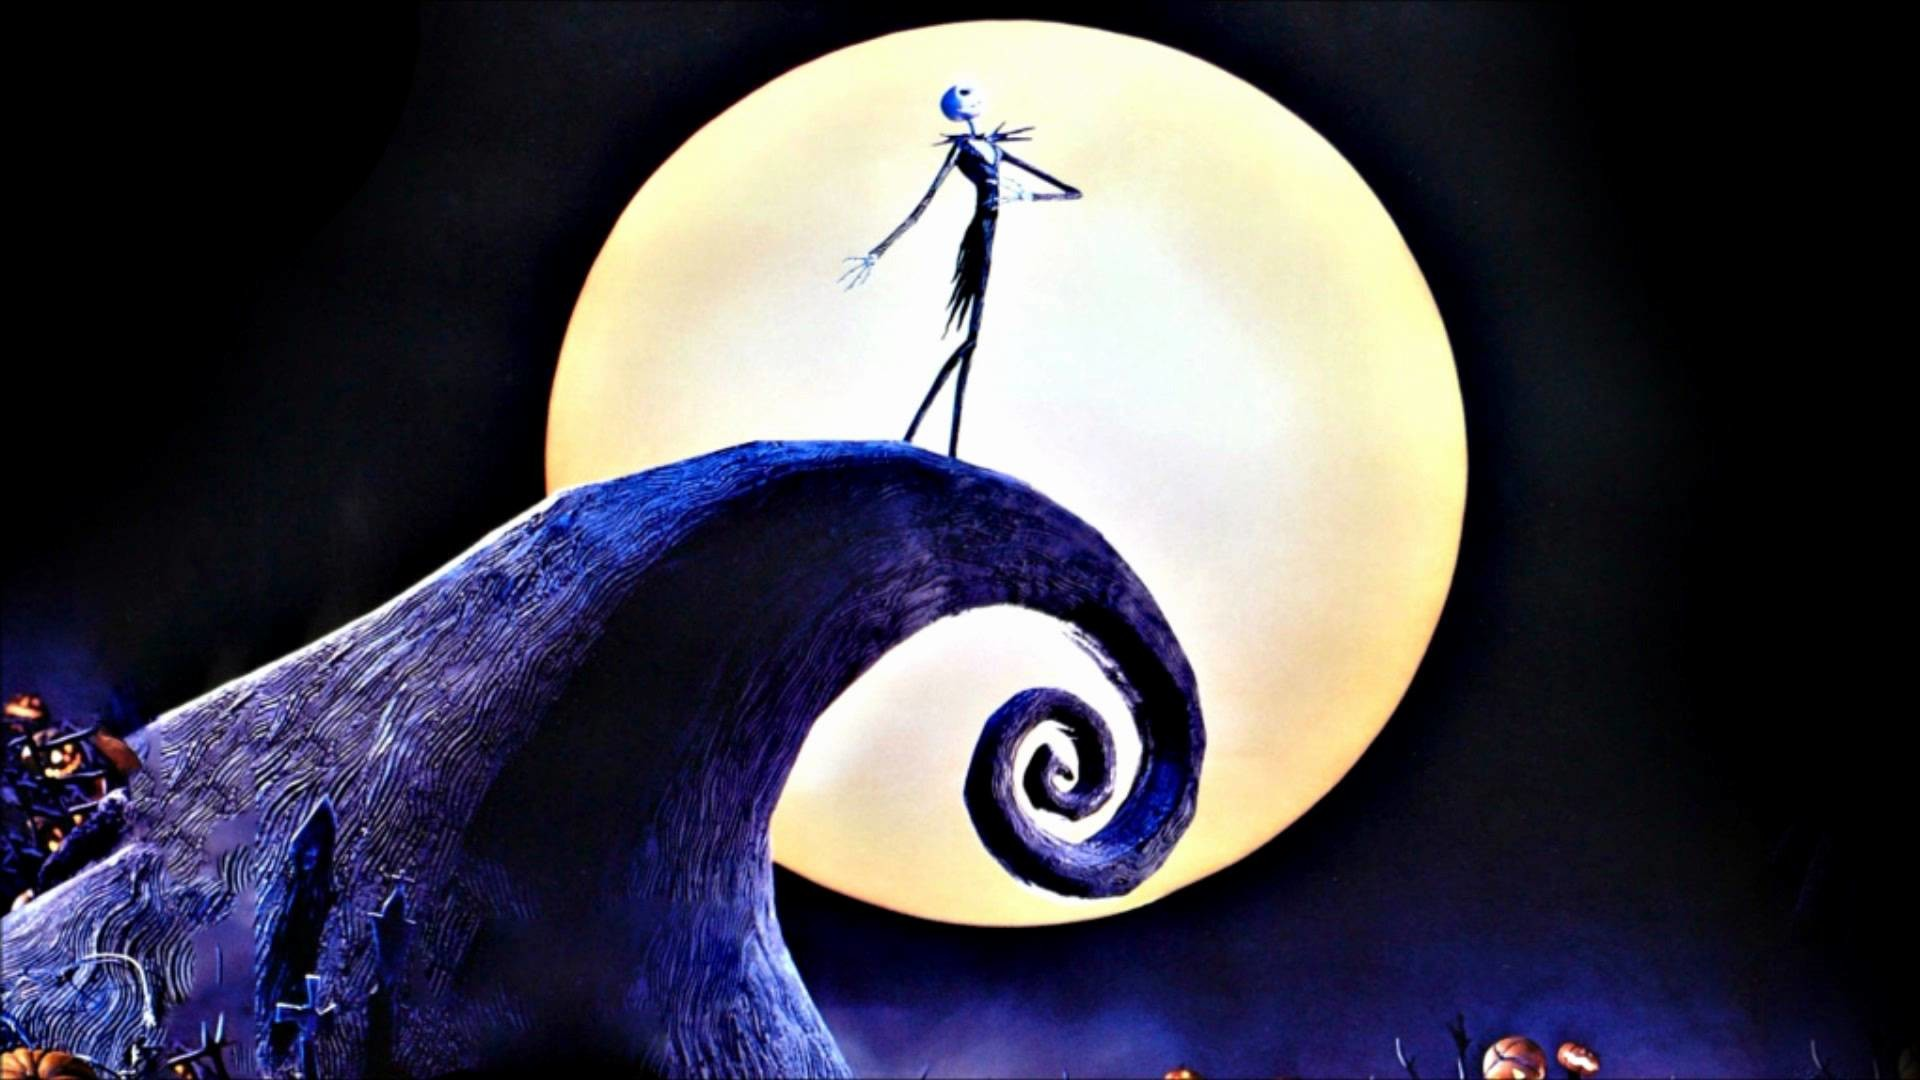 Wallpapers For > Nightmare Before Christmas Jack And Sally Desktop .